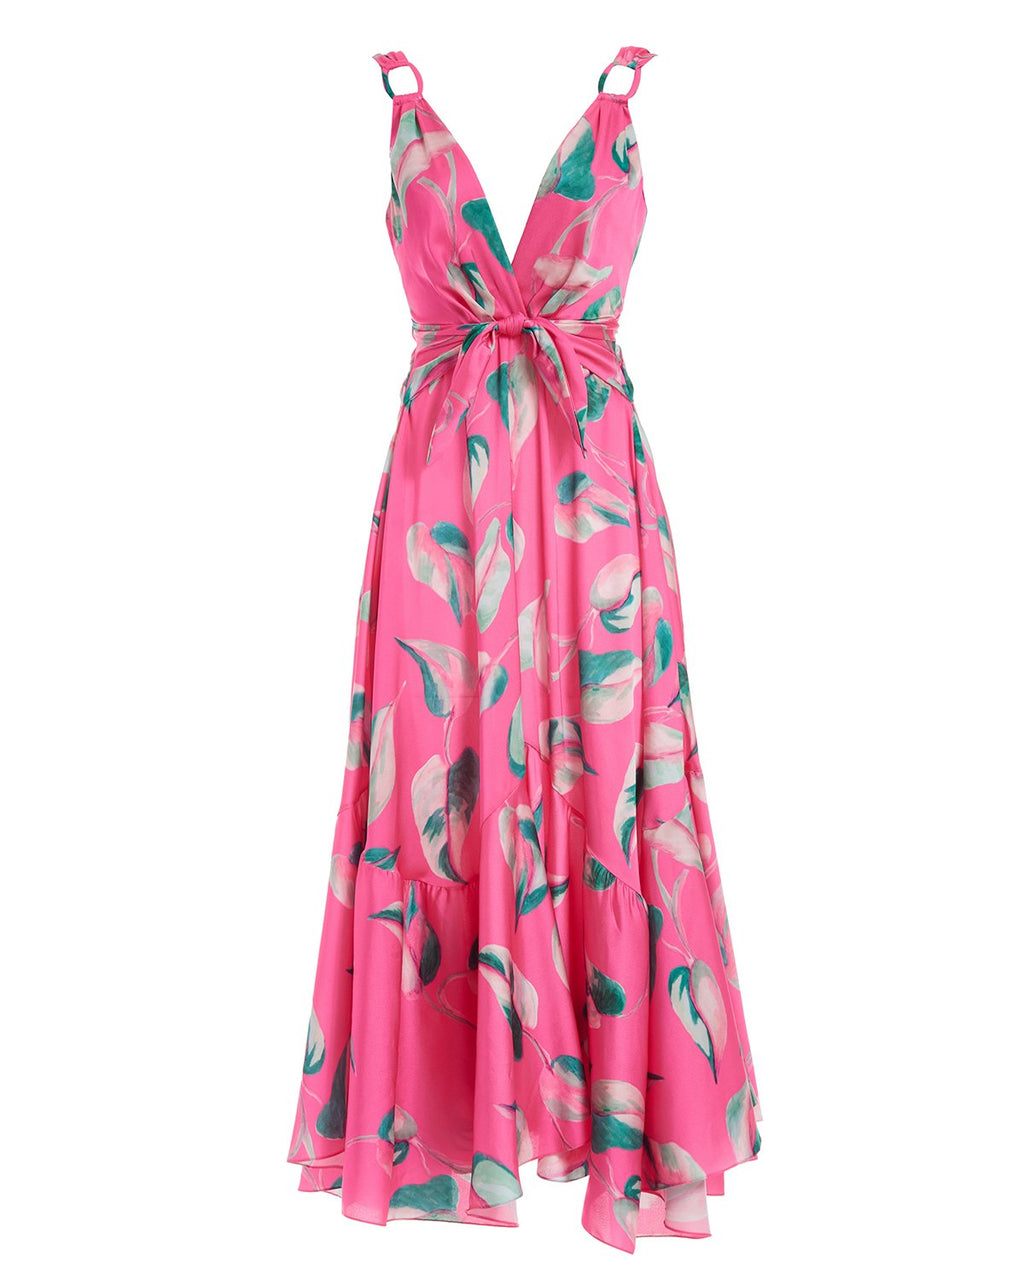 PATBO PANDOLA PLUNGE MAXI DRESS IN HOT PINK